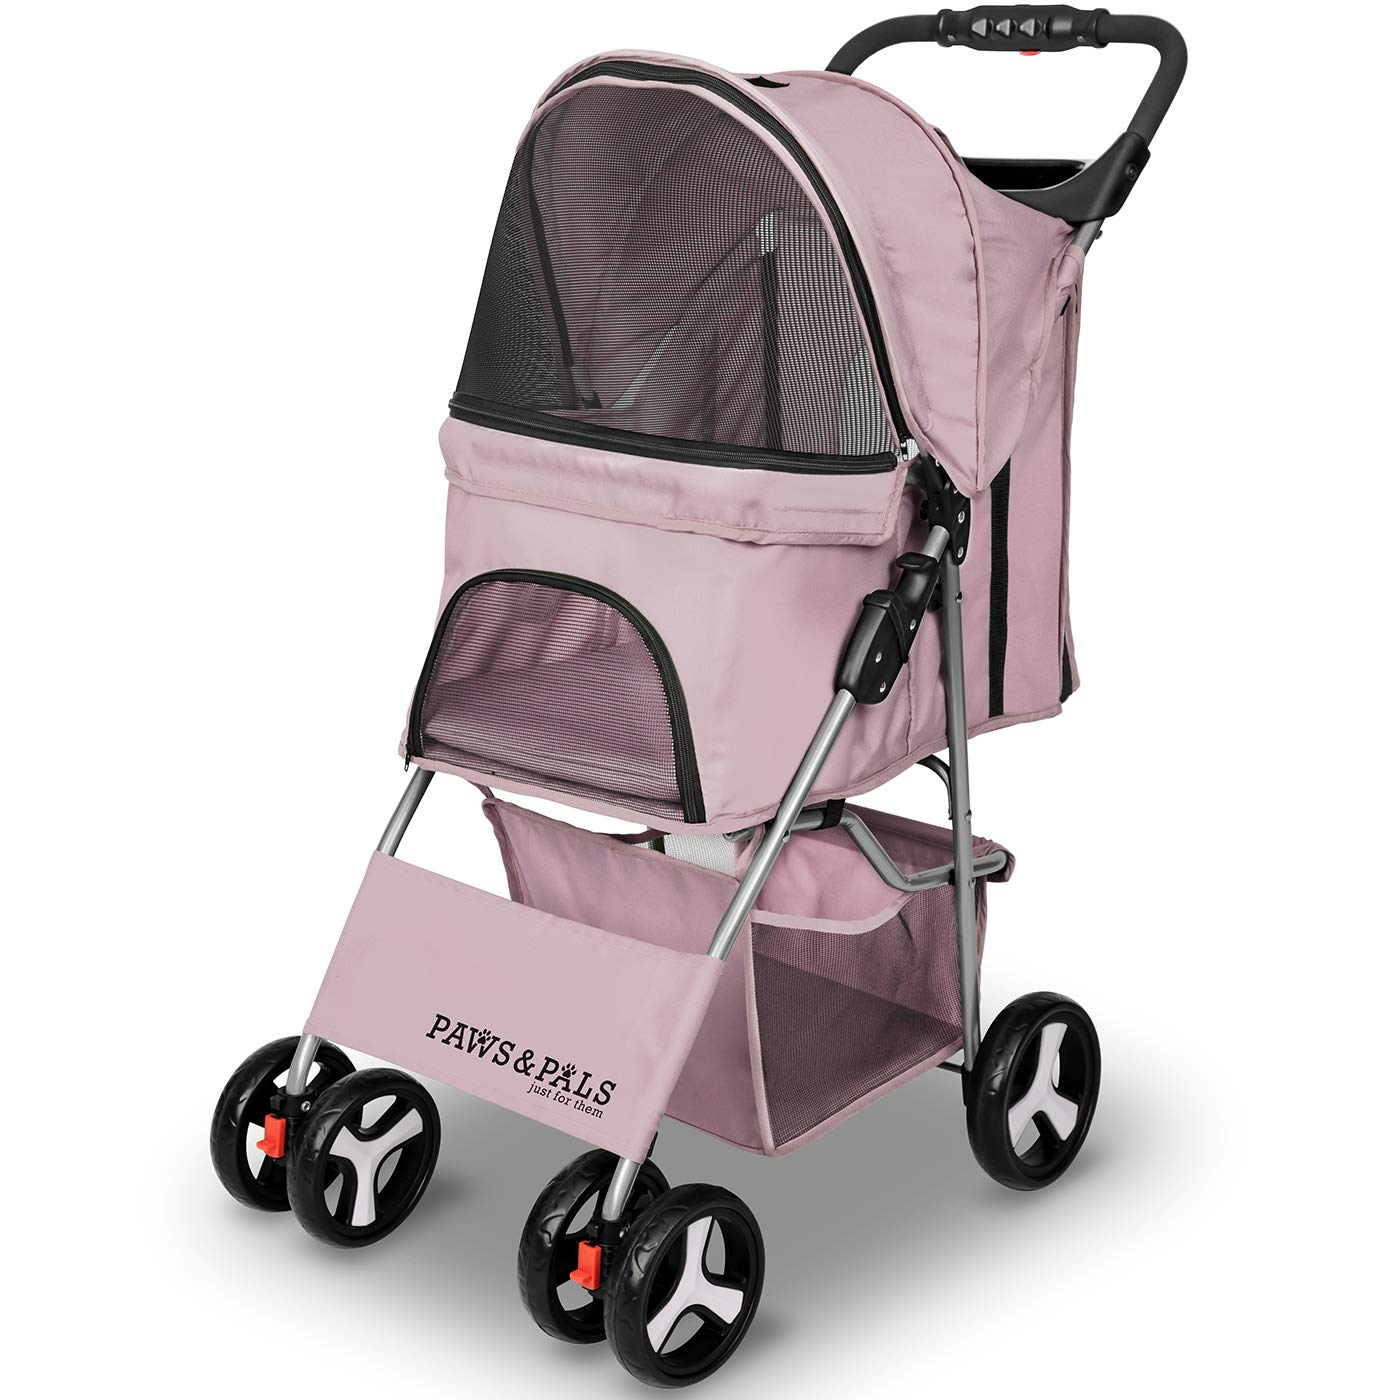 Paws & Pals 4 Wheeler Elite Jogger Pet Stroller Cat/Dog Easy Walk Folding Travel Carrier, Pink by Paws & Pals